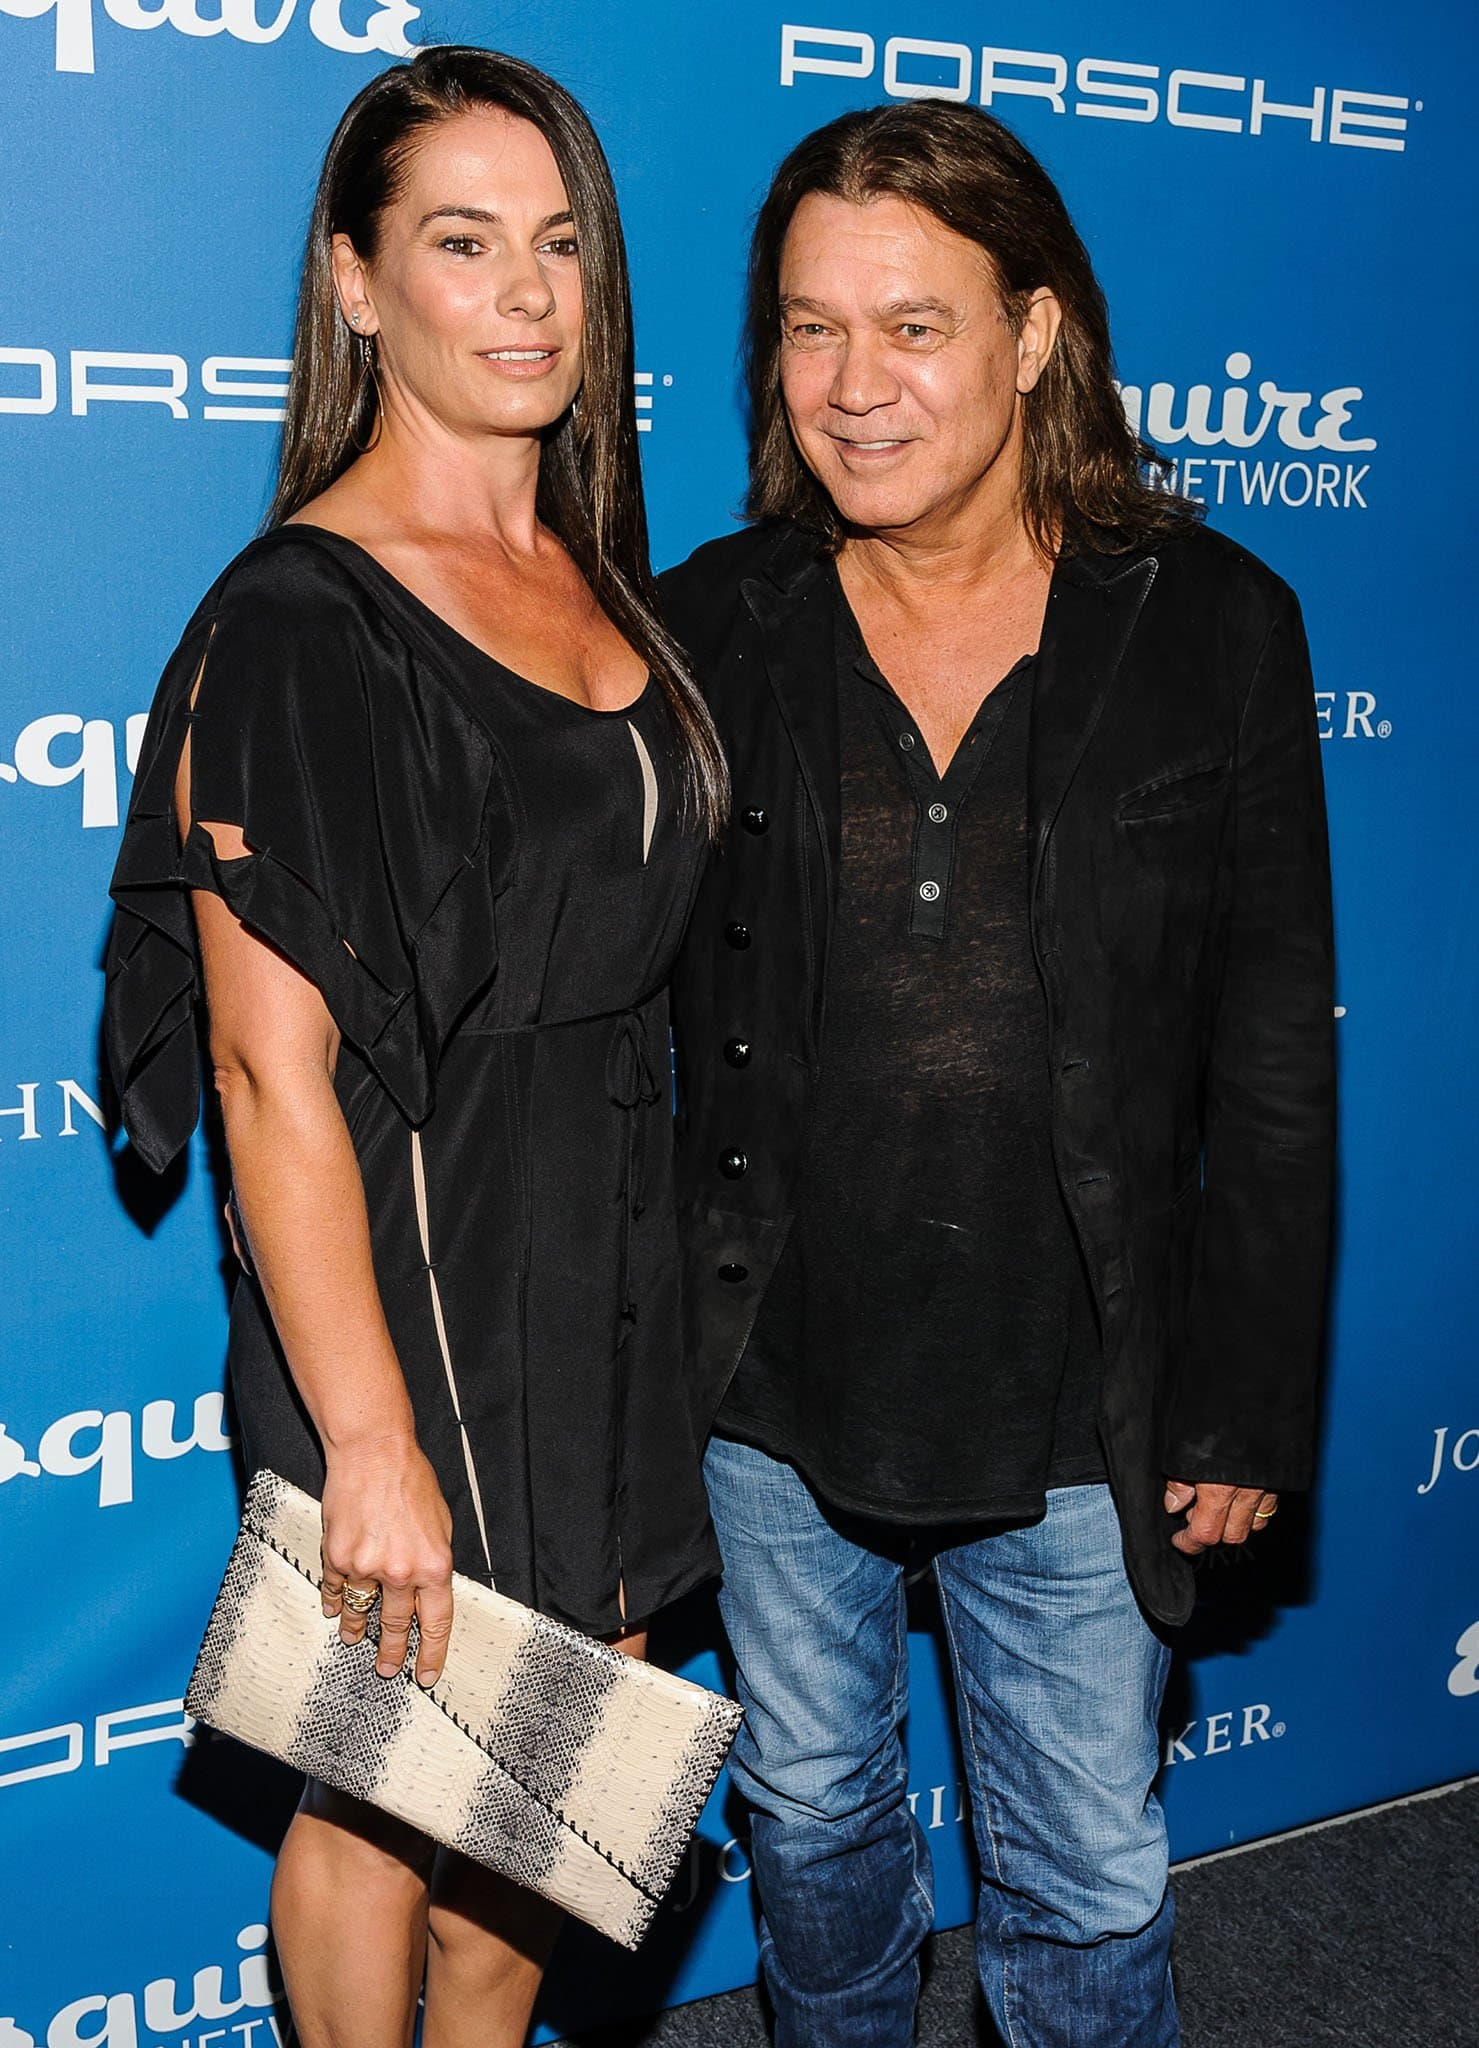 Janie Liszewski and the late Eddie Van Halen pictured at the Esquire 80th Anniversary and Esquire Network launch celebration on September 17, 2013